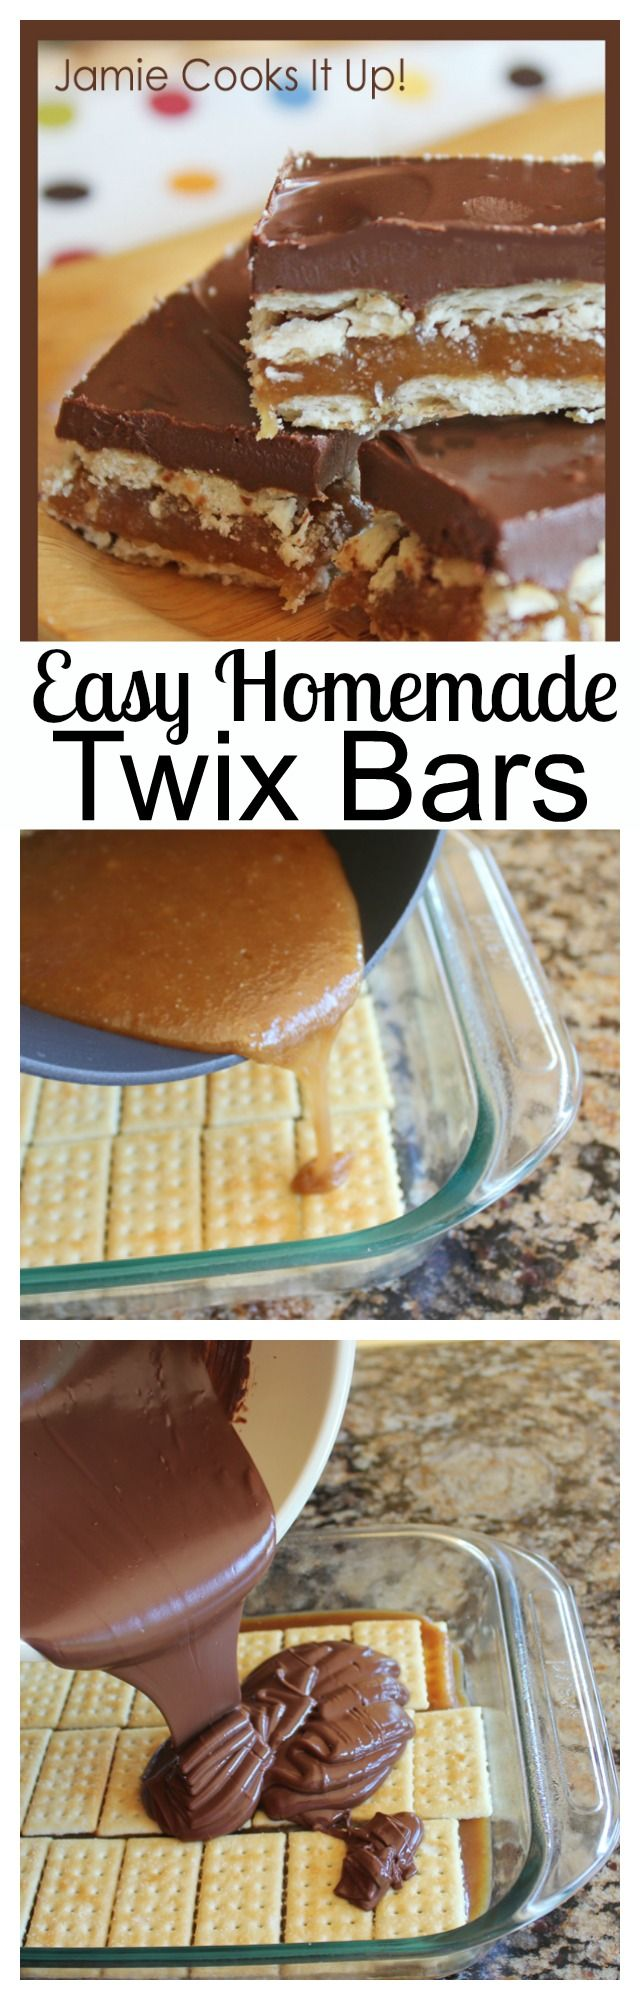 Easy Homemade Twix Bars, you won't believe how delicious these are!